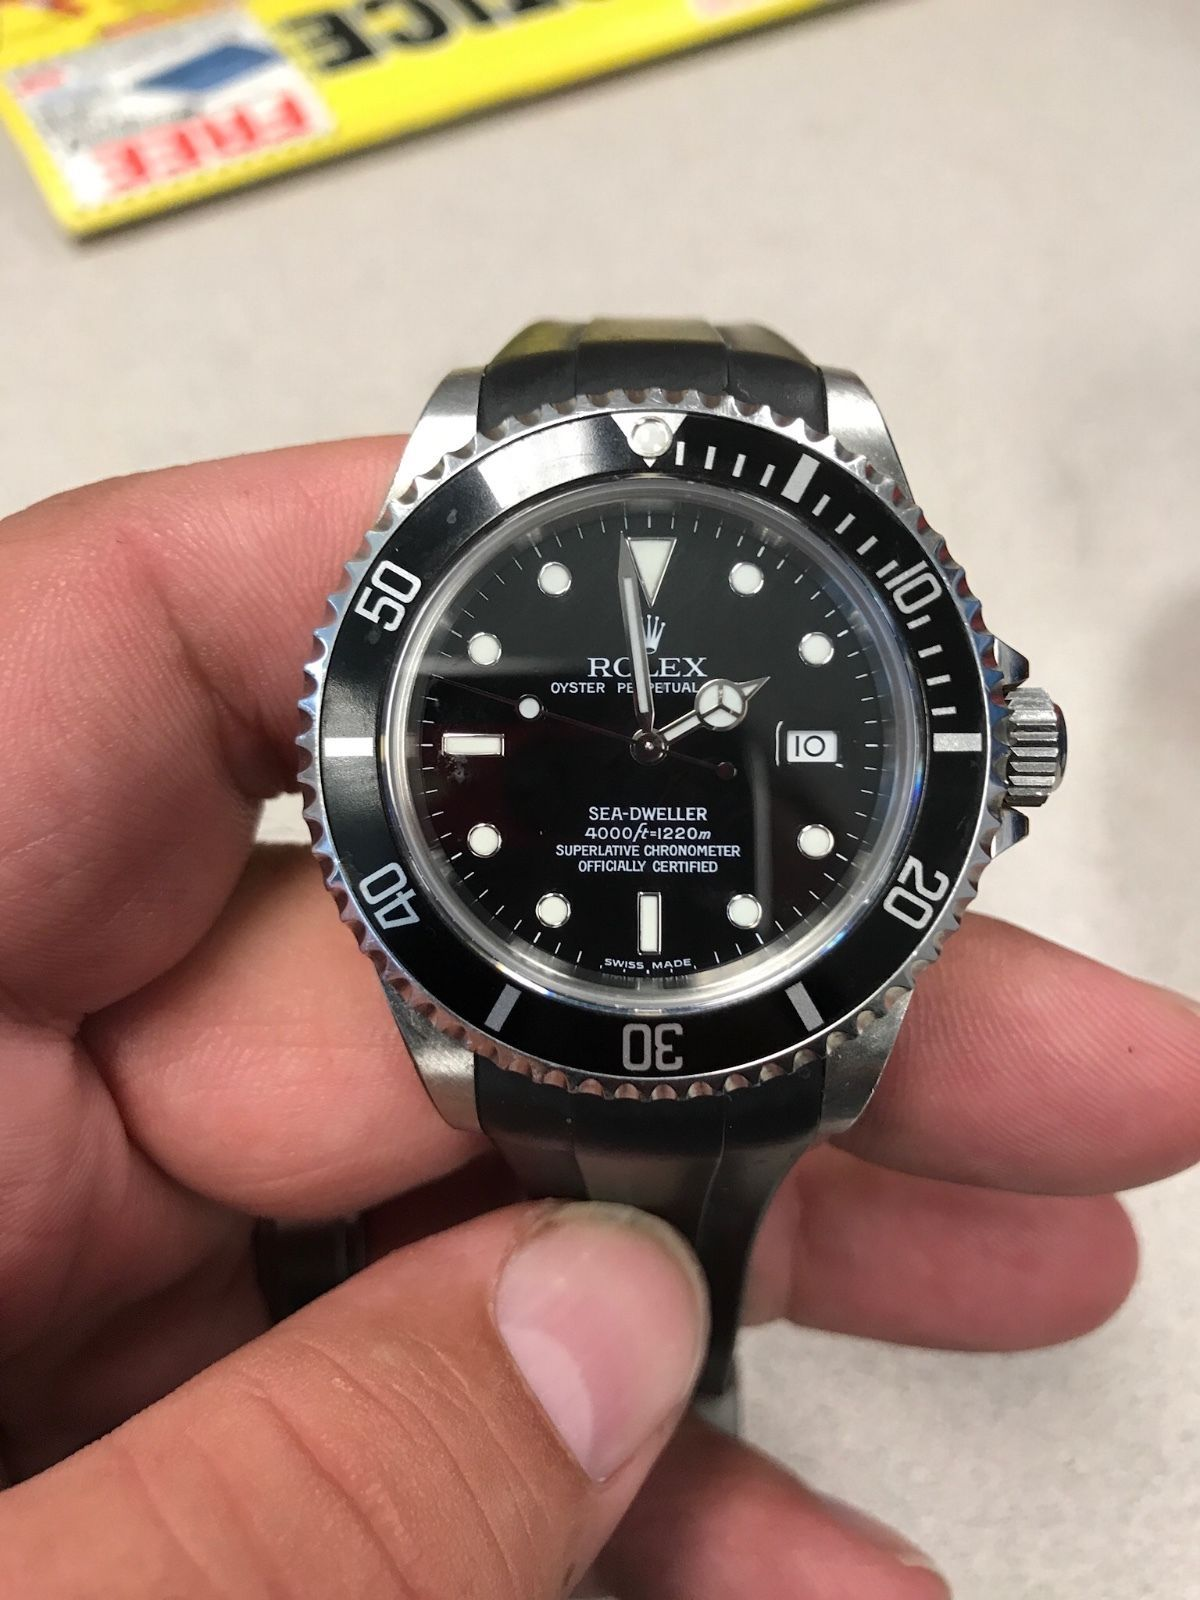 Forsale Rolex Sea Dweller Box Papers Appraisal And More Auction 5 100 00